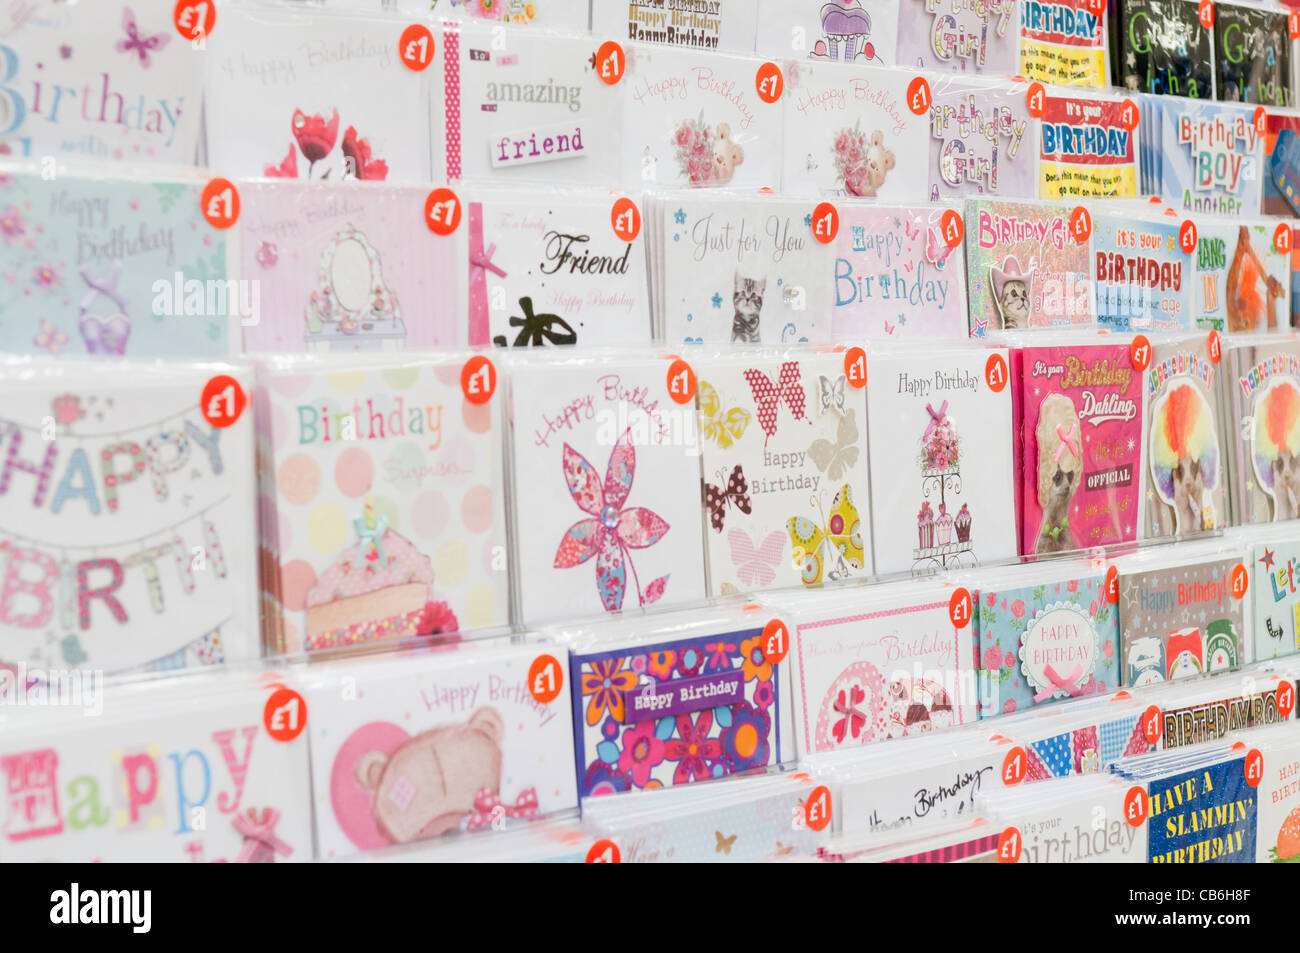 Shelves of Birthday Cards in a Tesco Store Photo Royalty – Birthday Cards Store